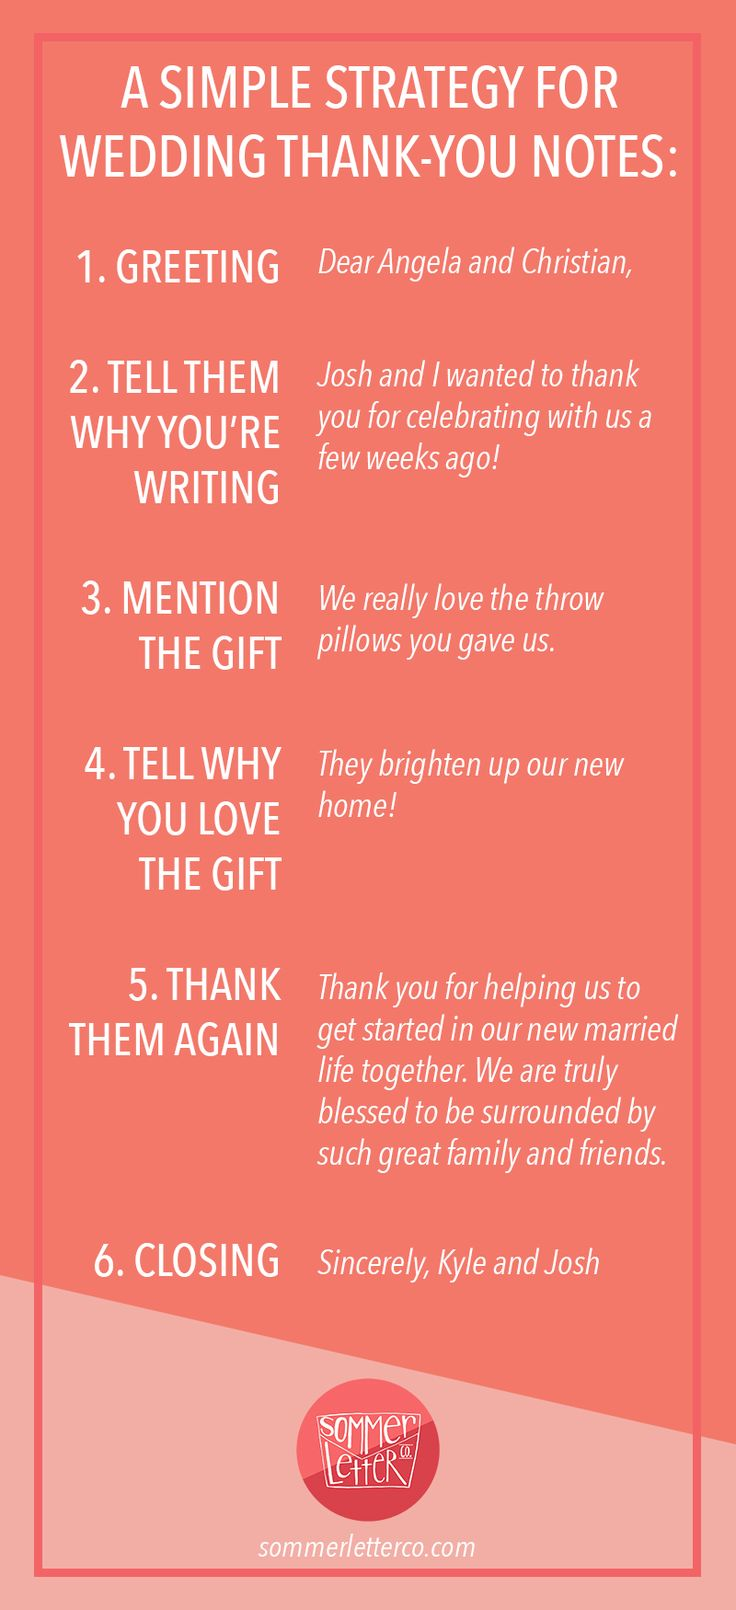 What to say for wedding thank you notes | Sommer Letter Co.